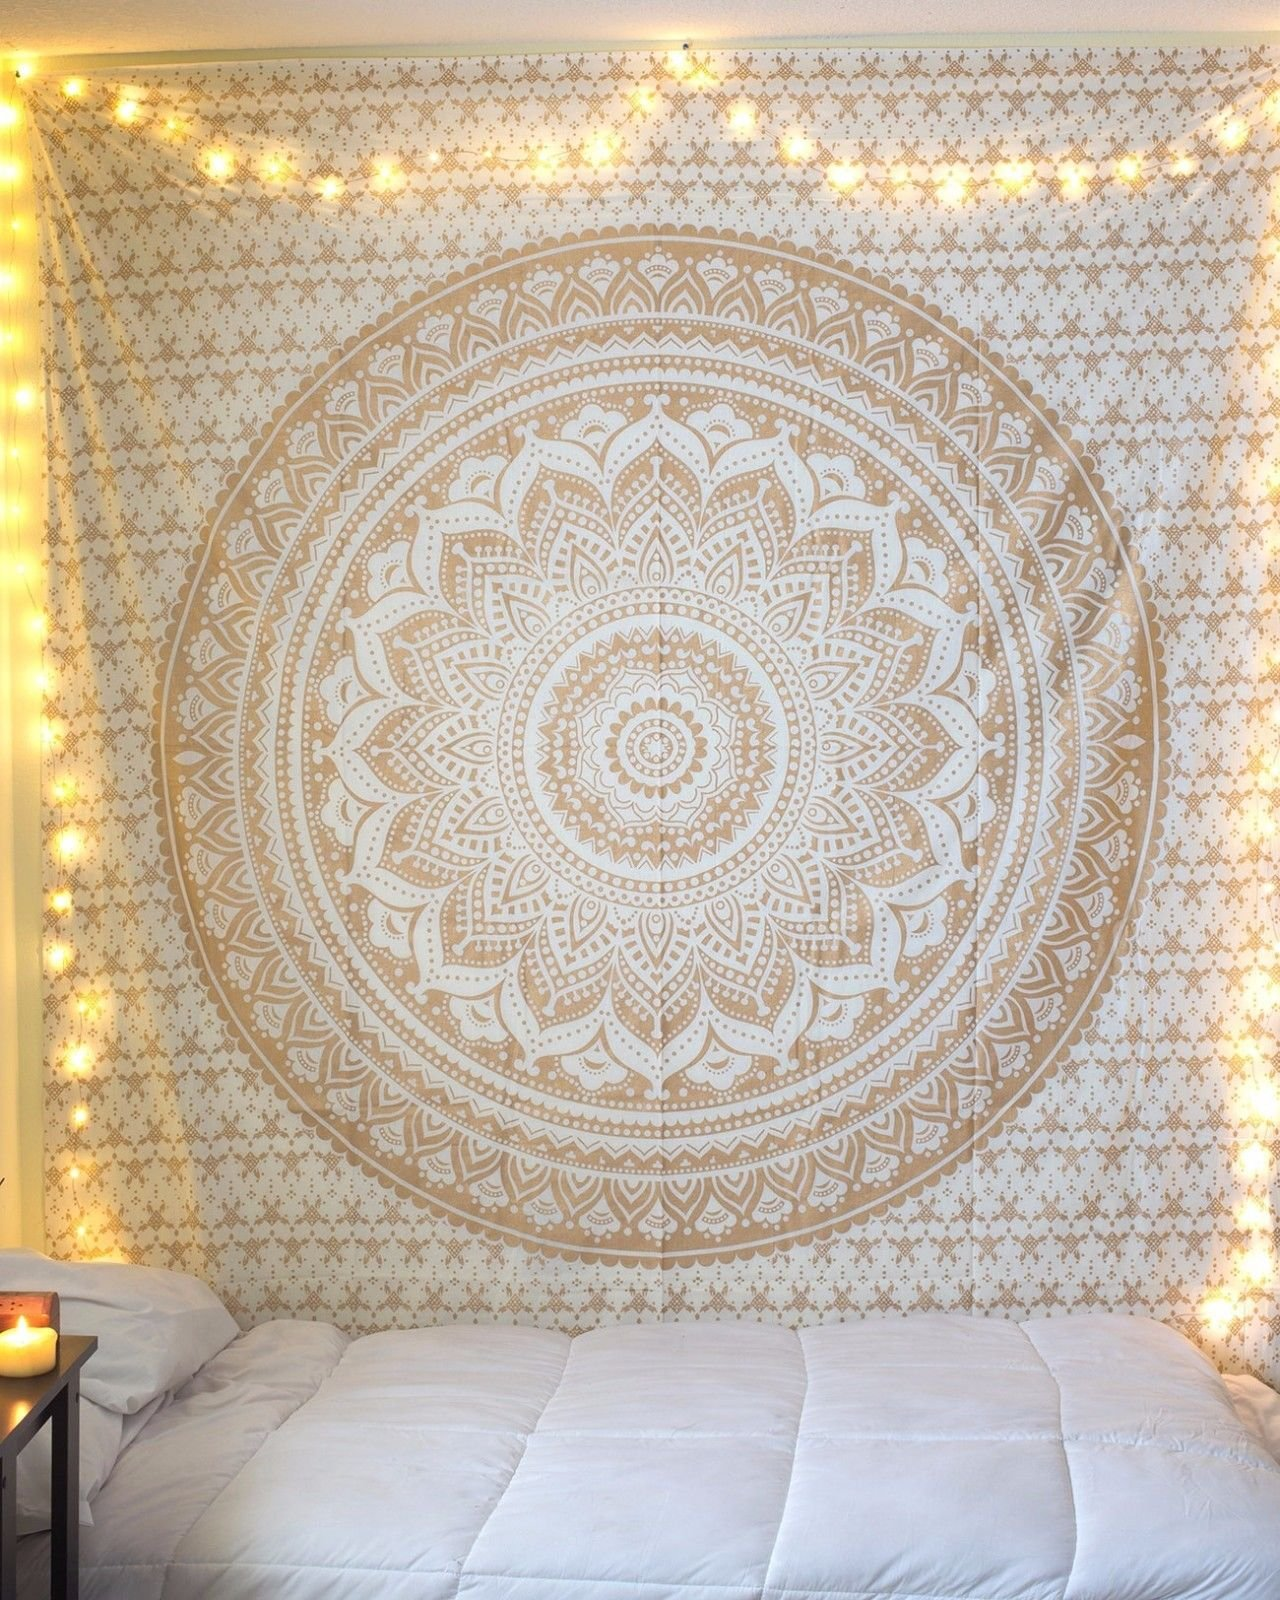 THE ART BOX Golden Ombre Tapestry Gold tapestry Ombre Bedding, Mandala Tapestry, Multi Color Indian Mandala Wall Art Hippie Wall Hanging (Gold, 85x55 Inch) (Queen 90x85 Inch)